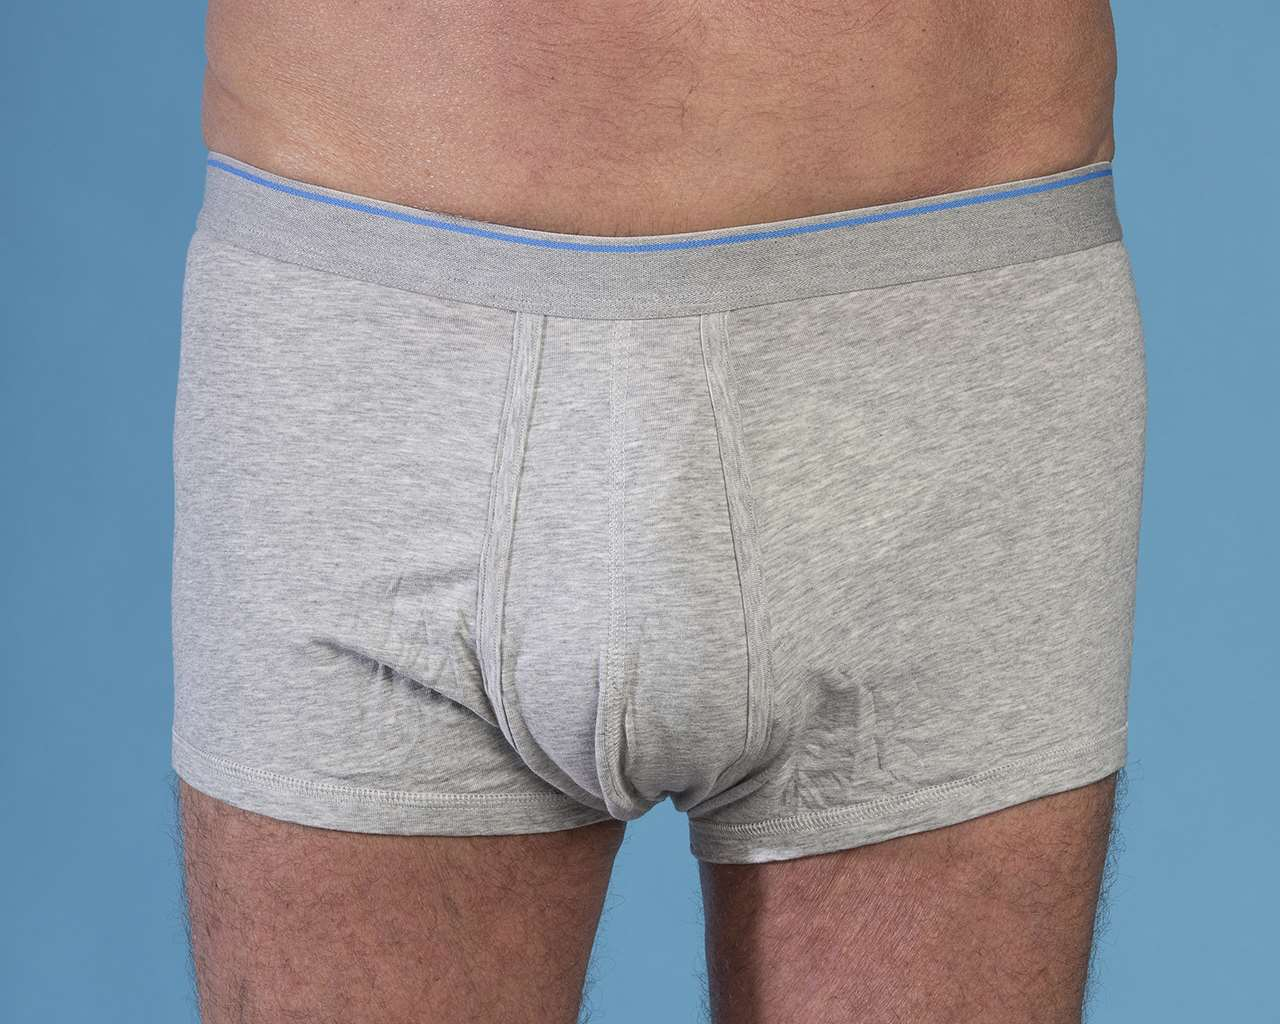 Washable pants